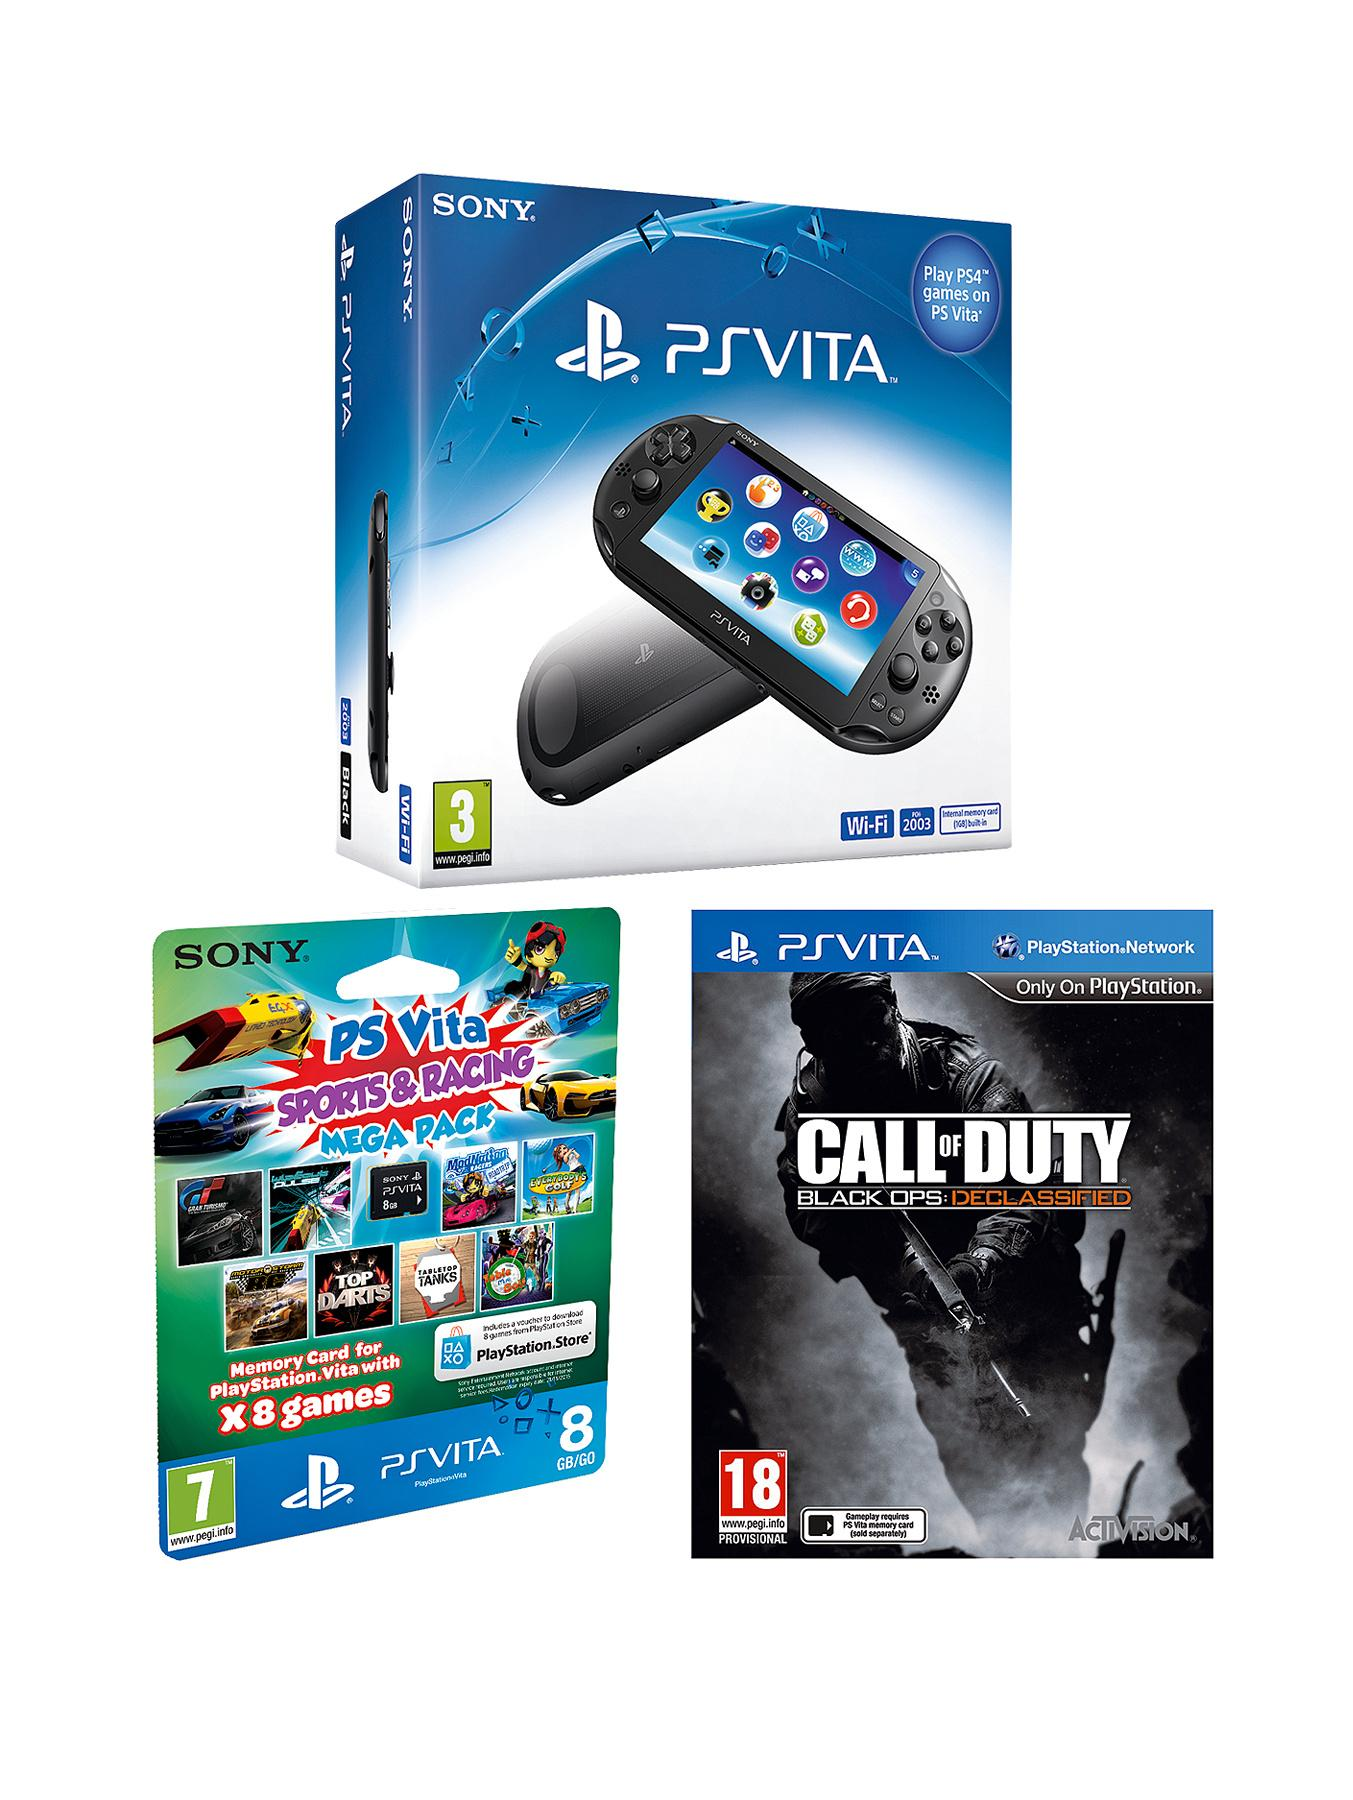 Slim Console with Call of Duty: Black Ops: Declassified and FREE 8Gb Sports and Racing Mega Pack